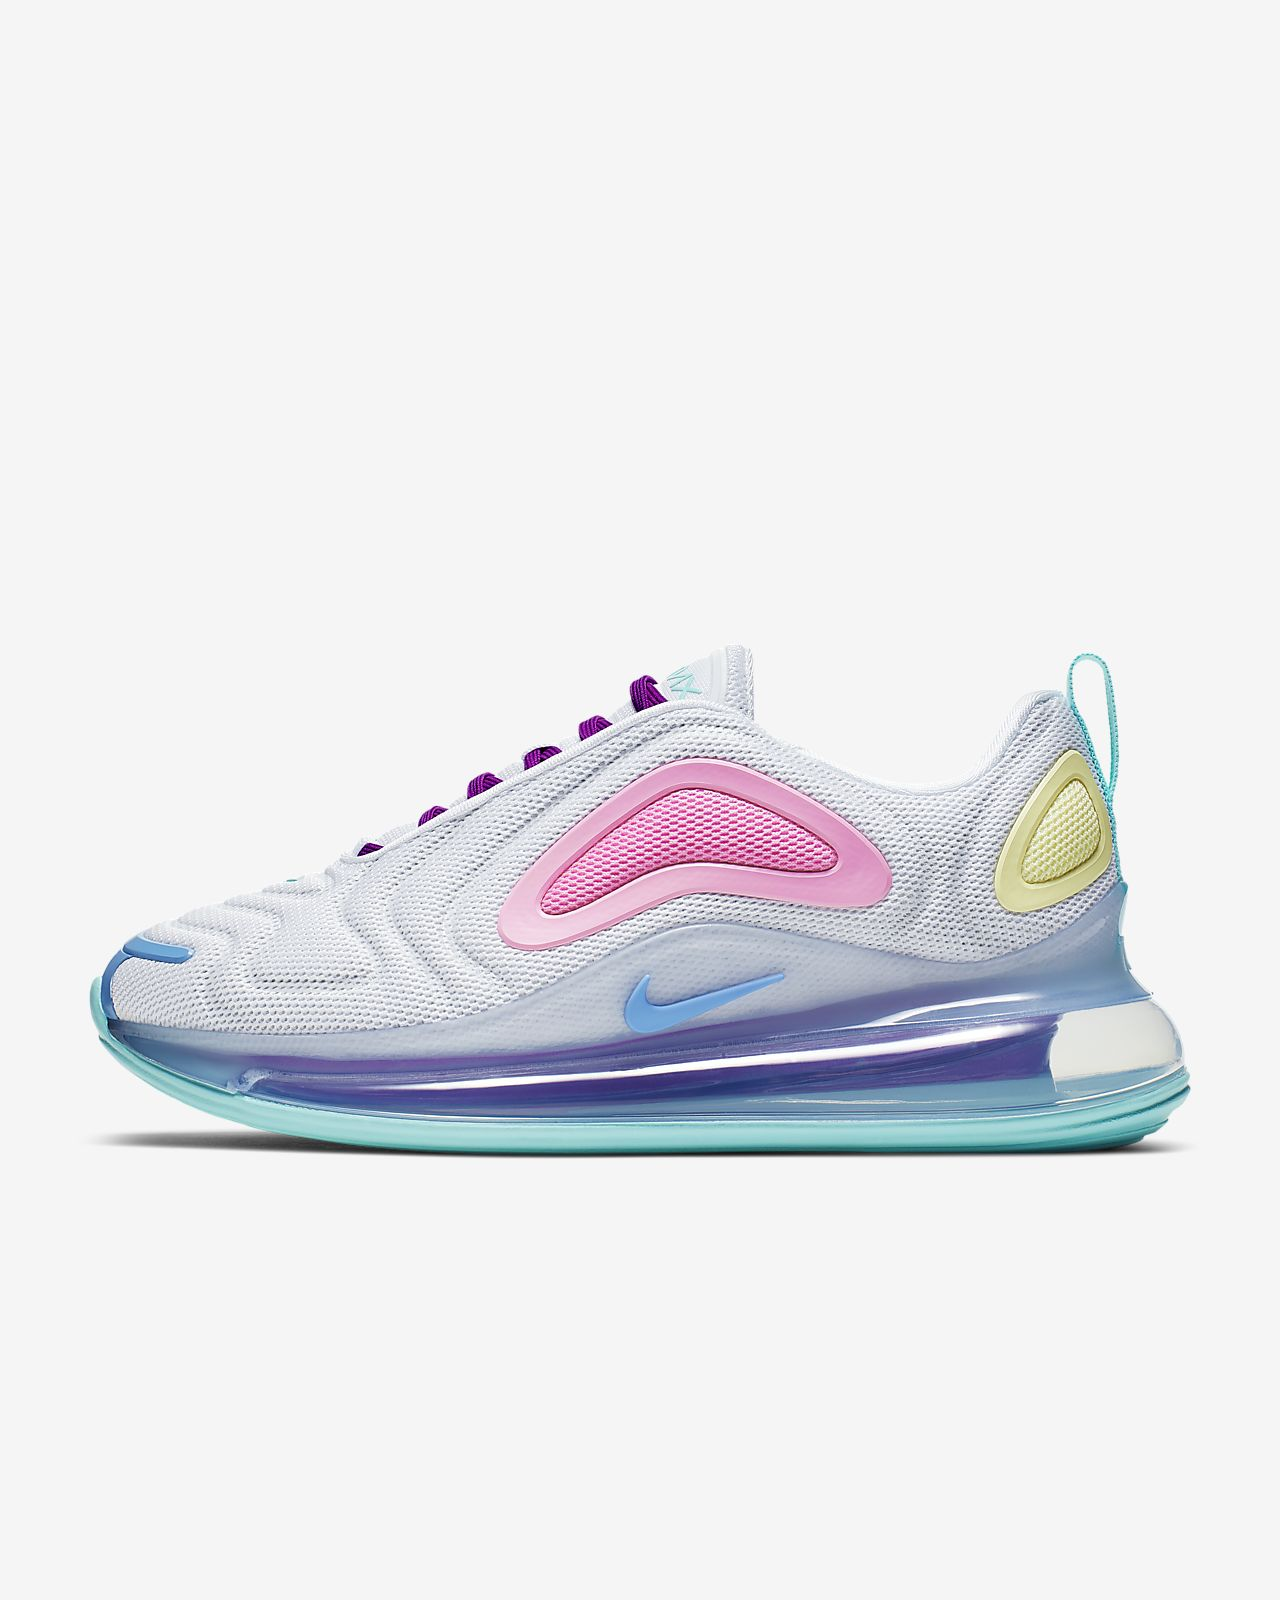 100% Original NIKE Air Max 720 Kids Shoes Teens Shoes